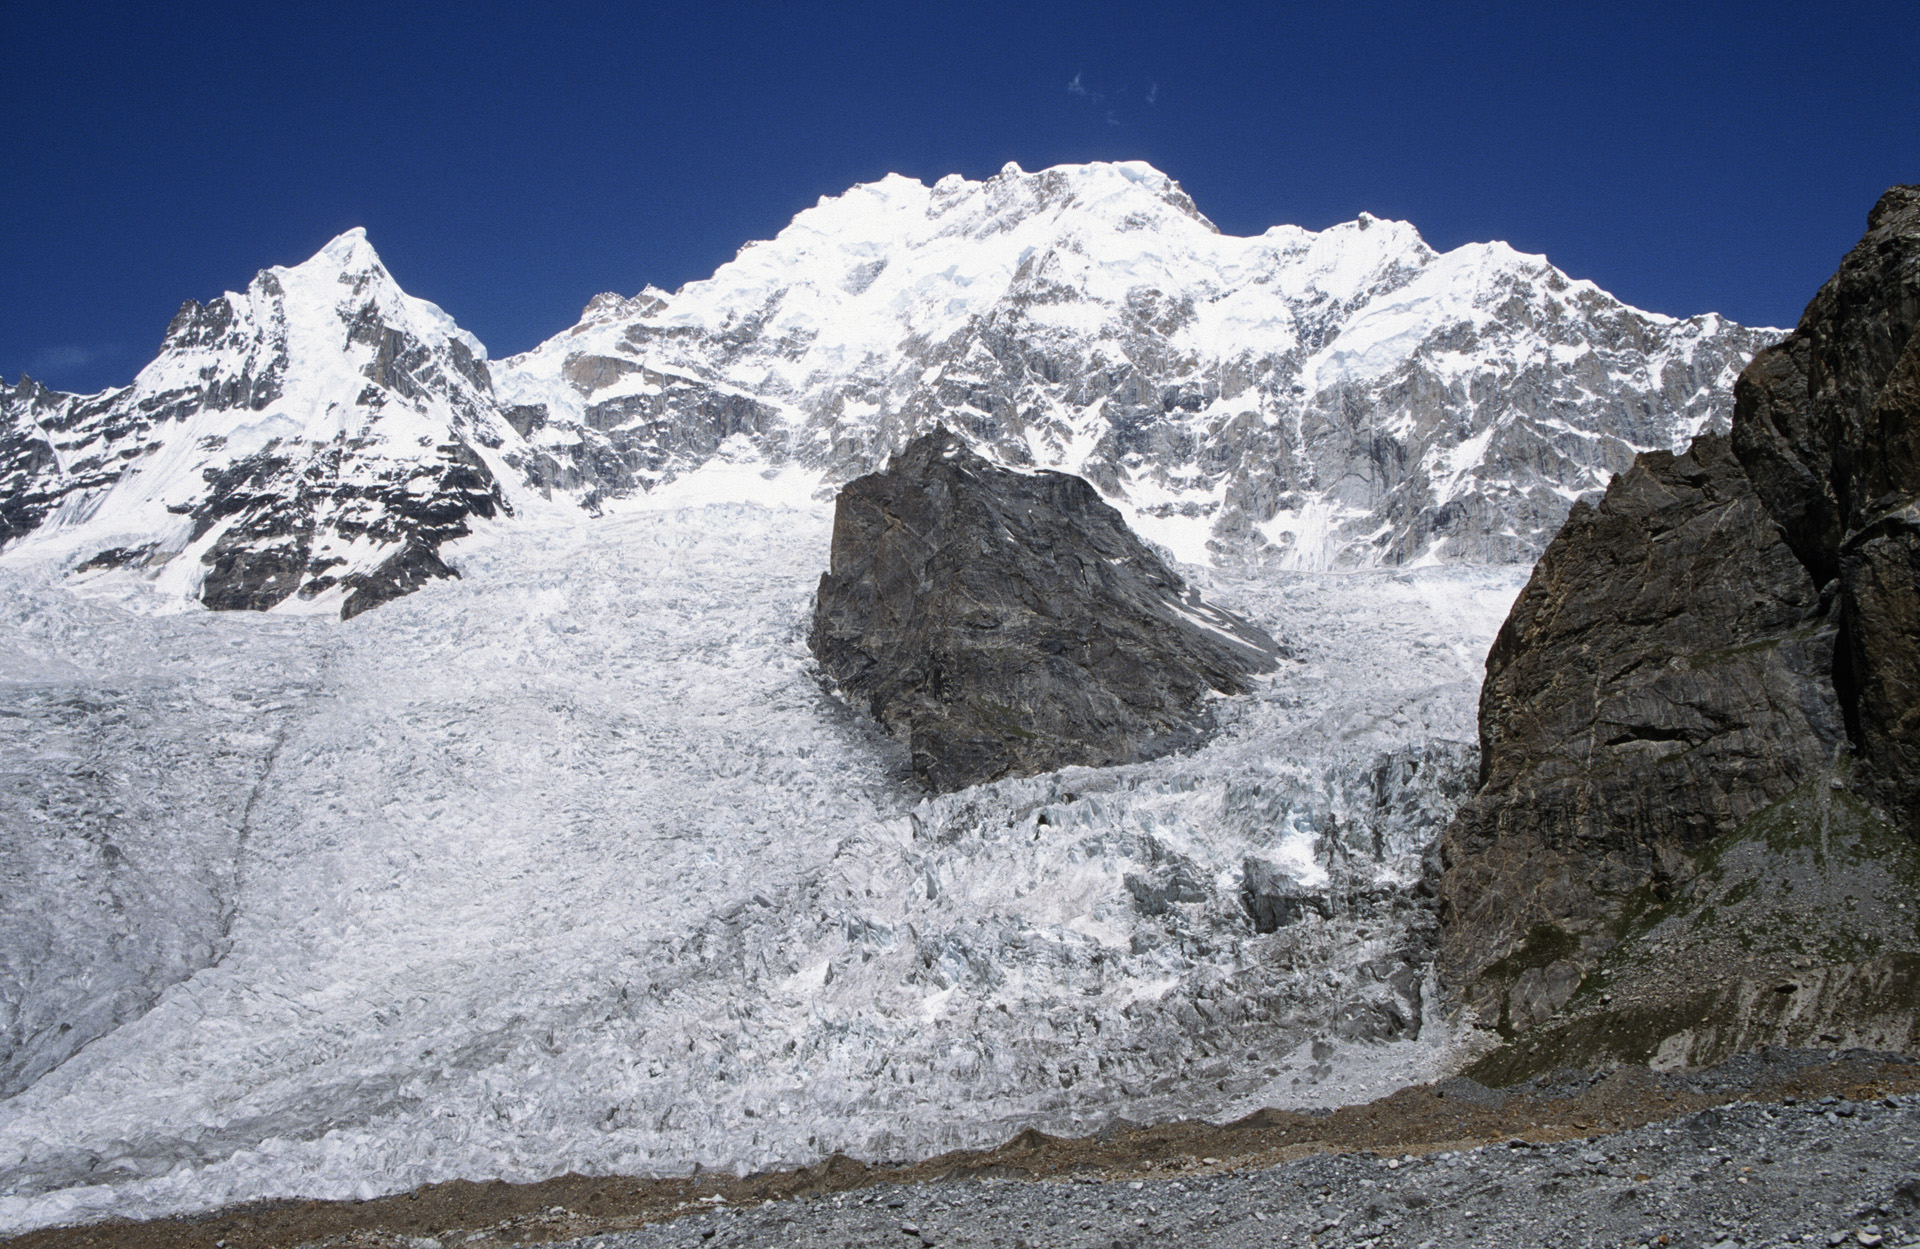 Masherbrum Icefall from the trail between the Ghondogoro High Camp and Daltsampa camp.